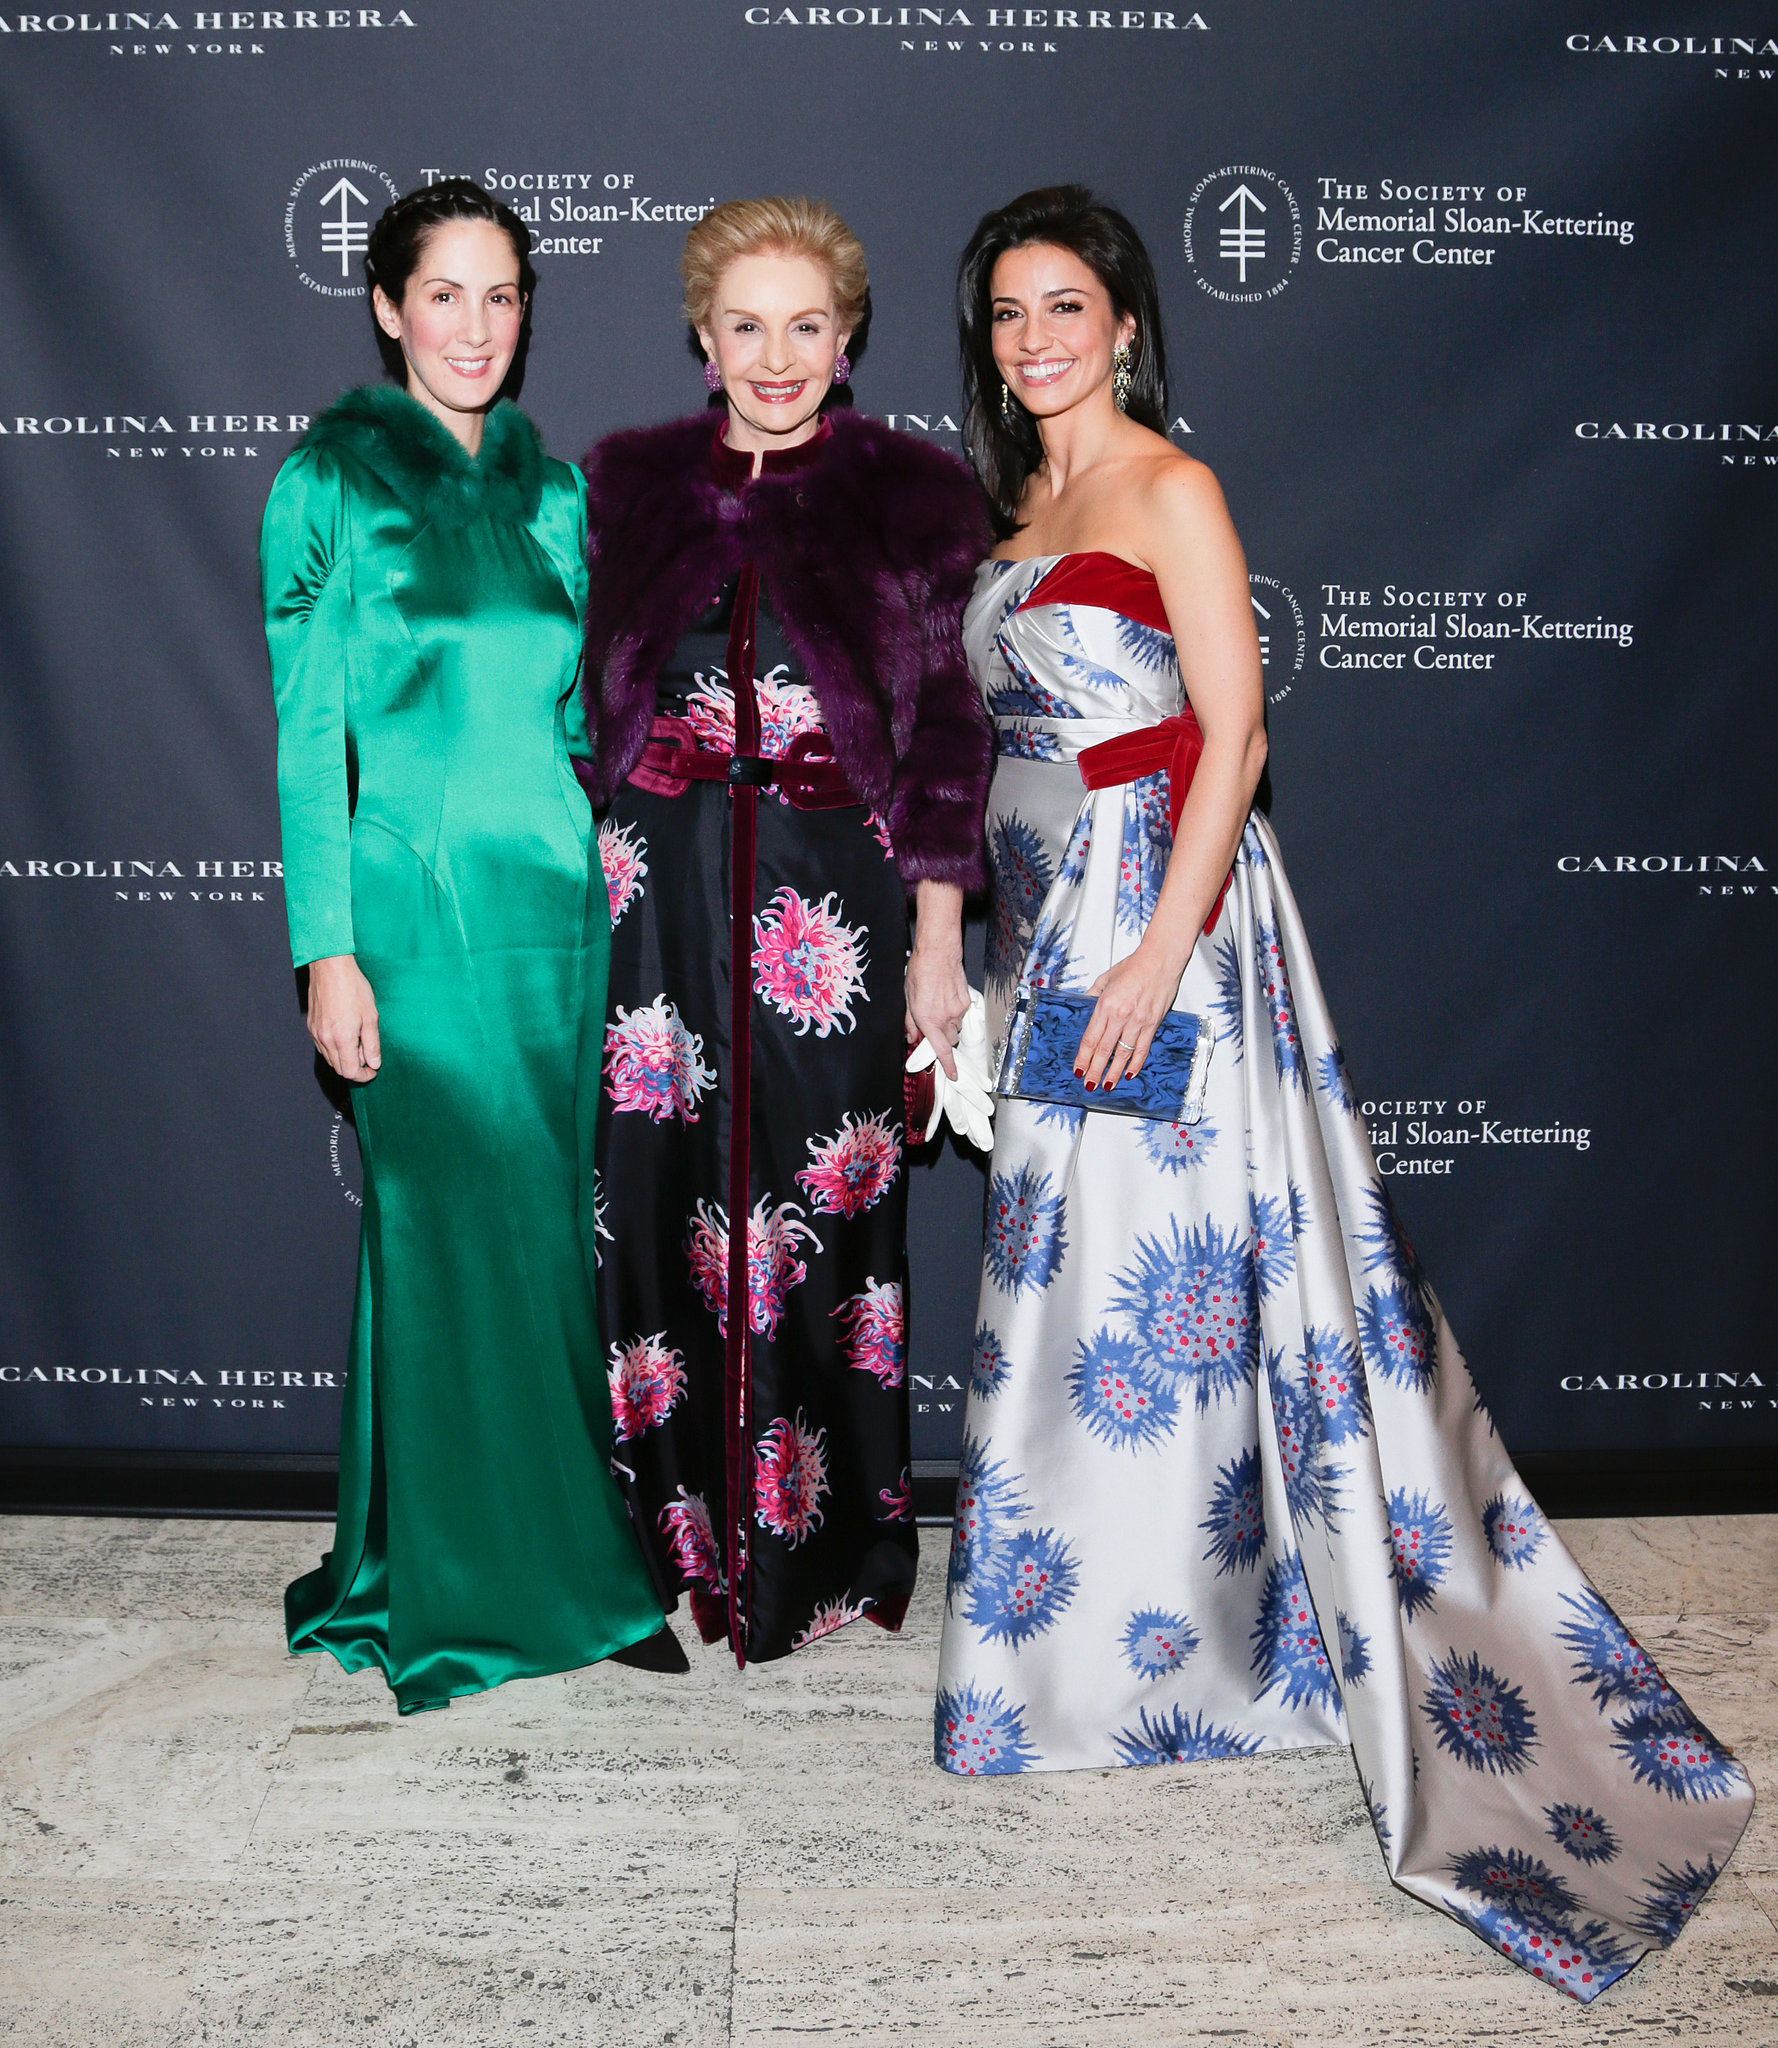 Patricia Lansing, Carolina Herrera, and Shoshanna Gruss in Carolina Herrera at The Societ